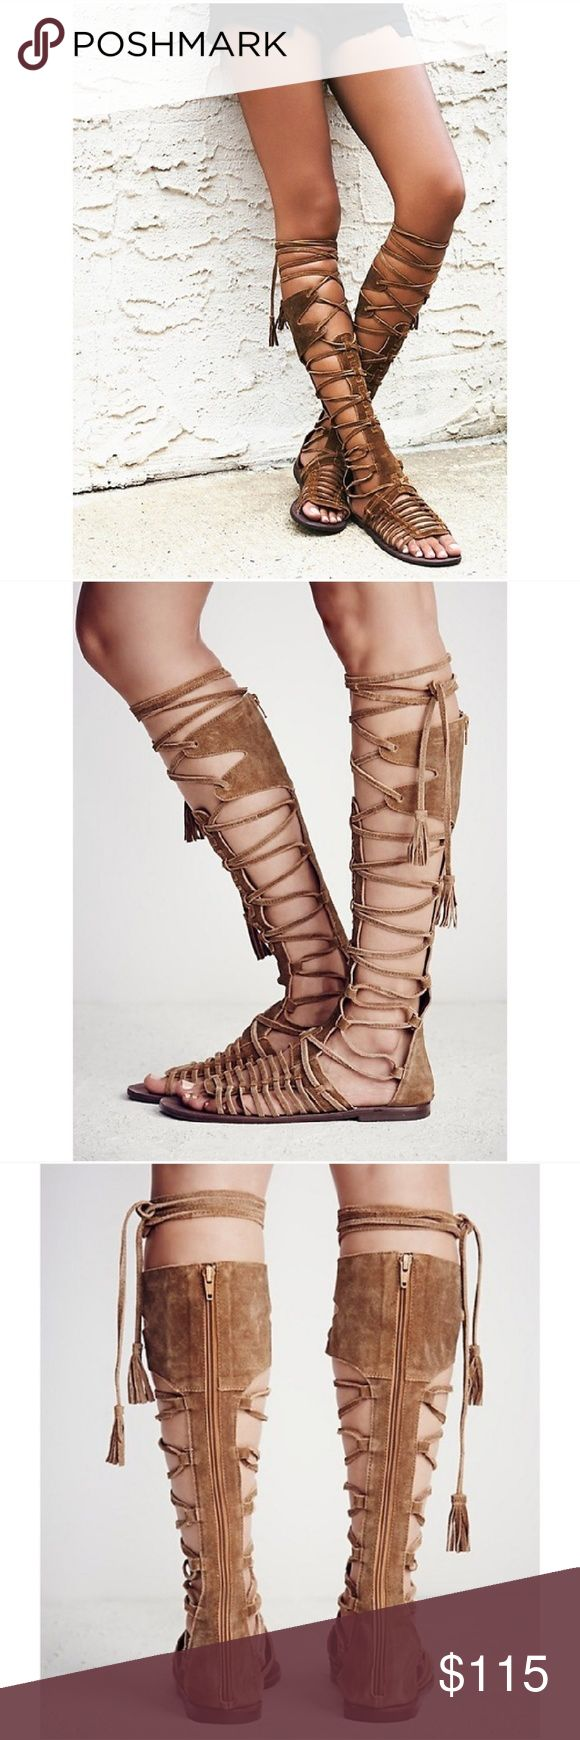 Free People Sun Seeker Tall Gladiator Sandal Sz 8 These Free People Sun Seeker Tall Sandals are strappy gladiator sandals in honey whiskey suede. They feature lace-up detailing up the front and a full zipper all the way up the back for an easy on/off. Excellent condition though the right toe shows some scuffing on the tip of the footbed (see pictures) - NEW with tags - no box. Size 8. Free People Shoes Sandals